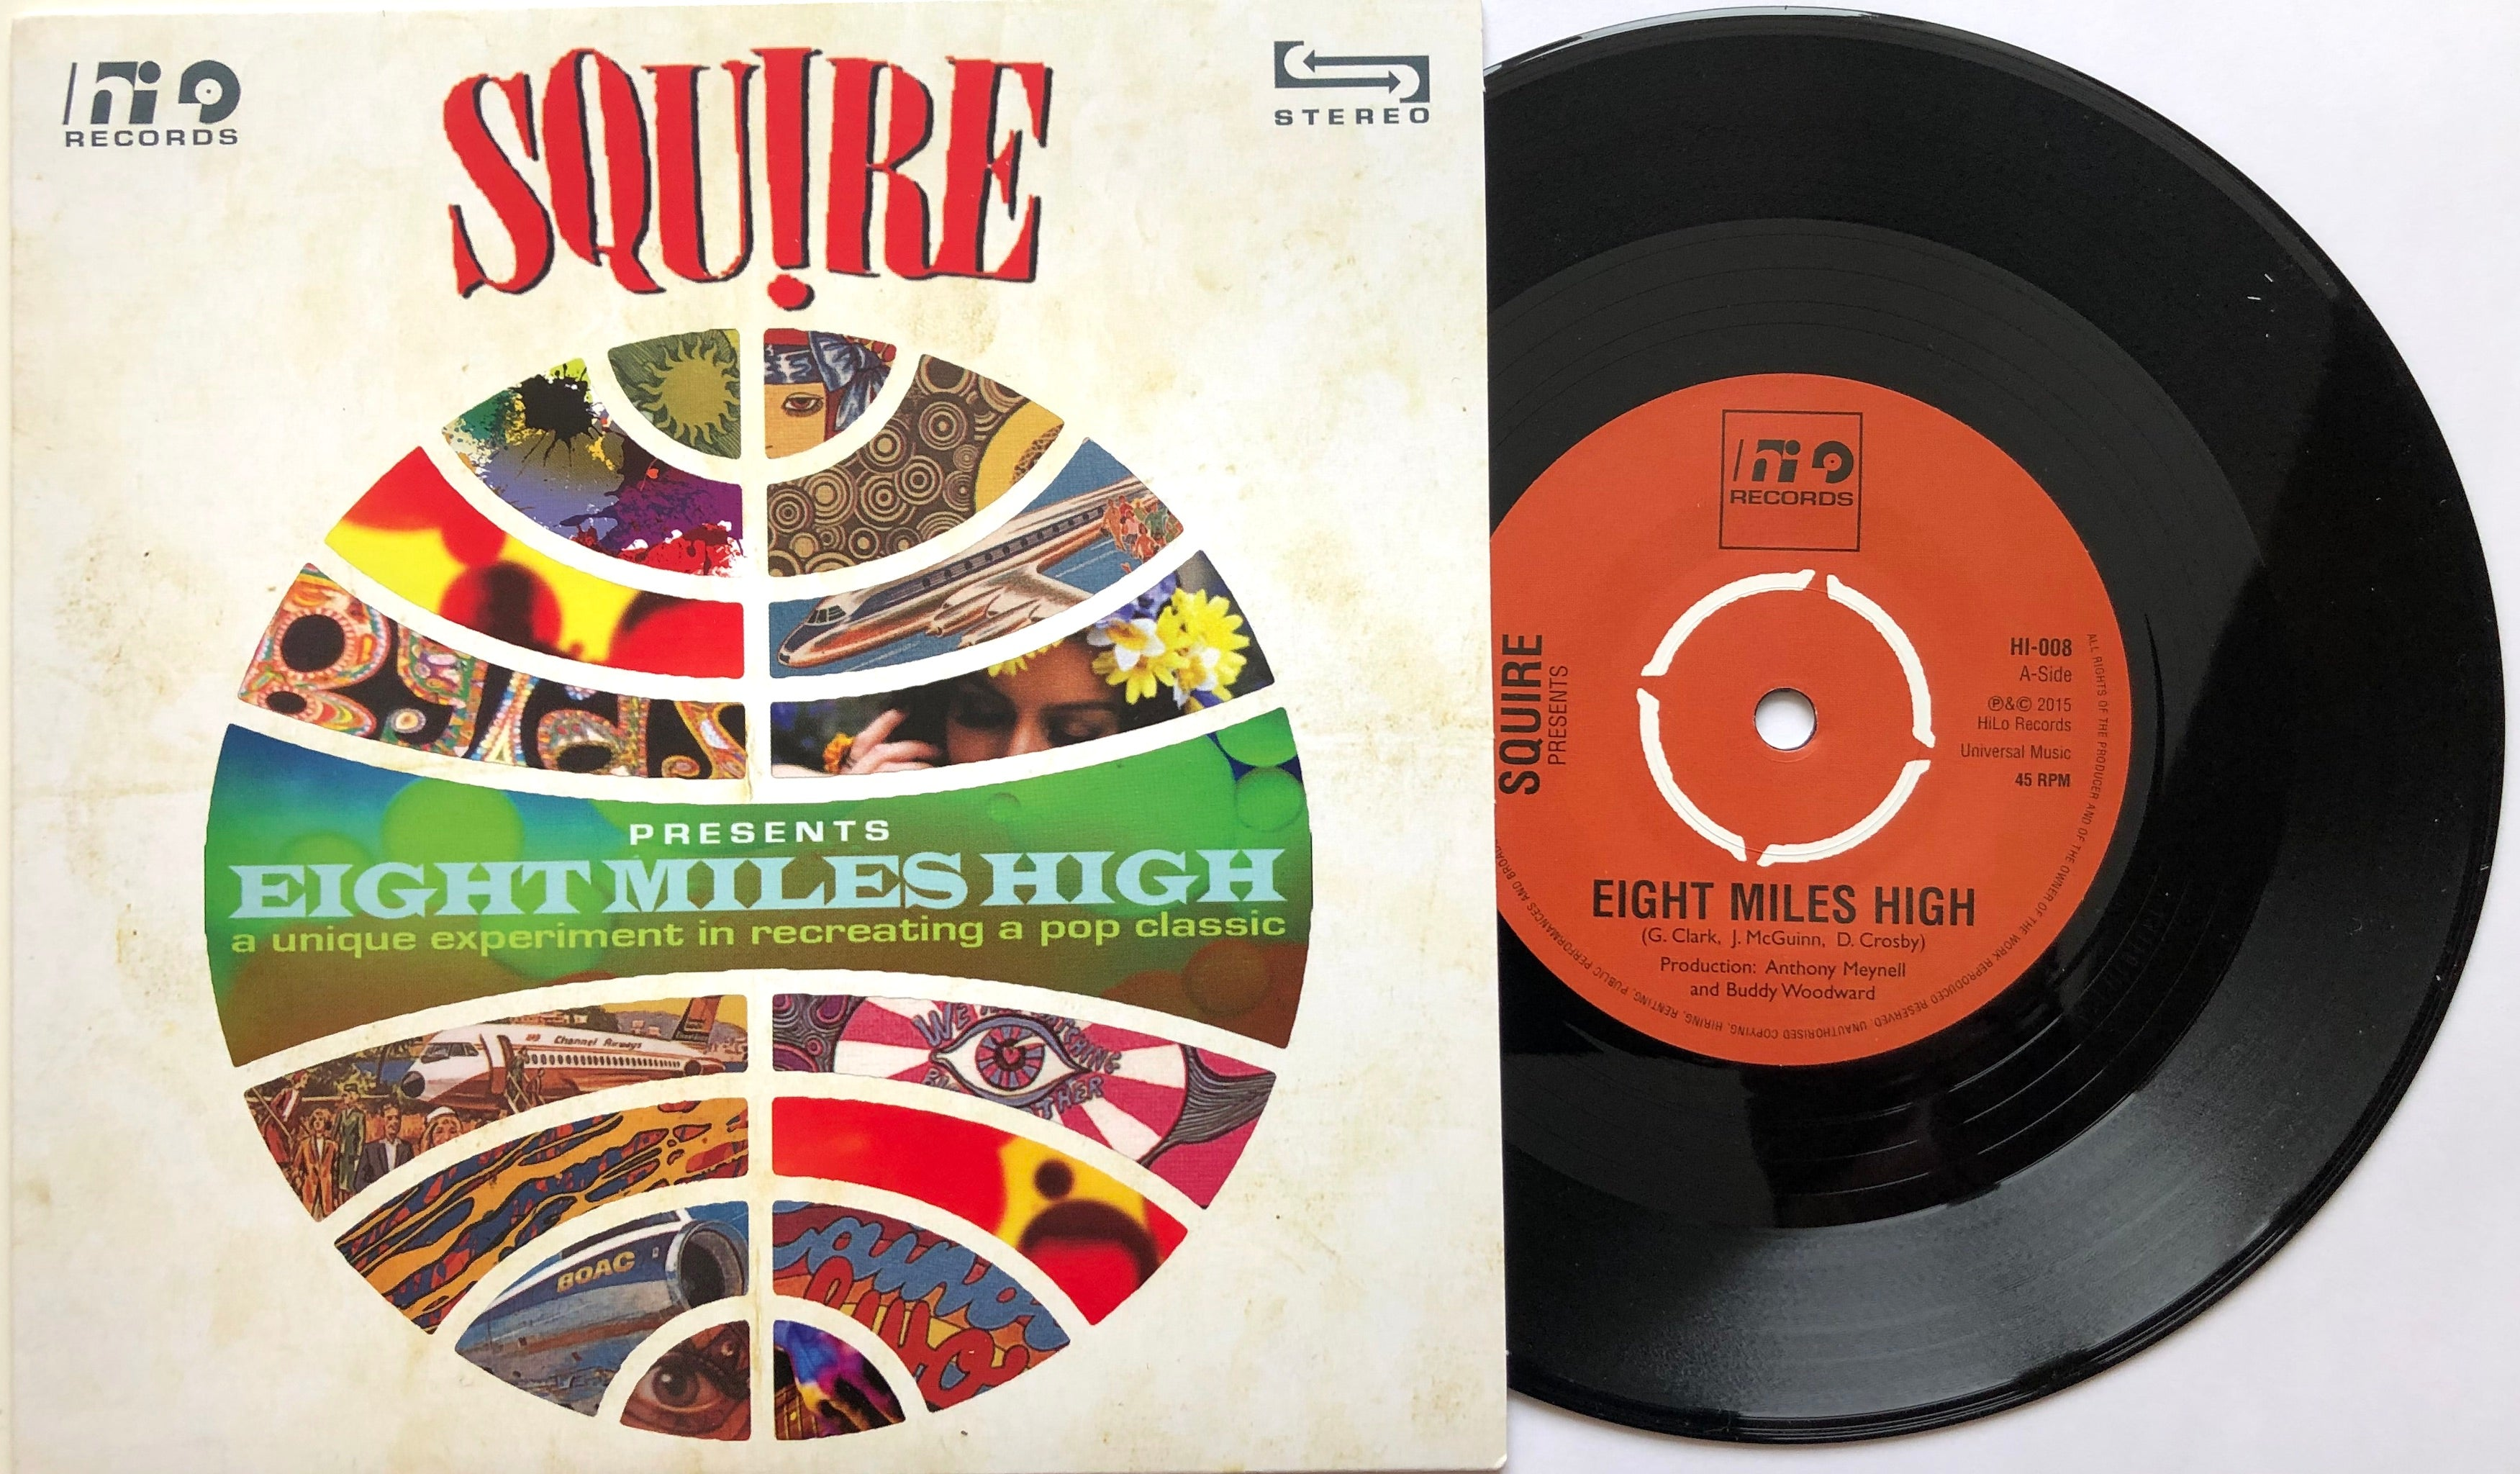 Squire - Eight Miles High - Vinyl 7 inch BLACK